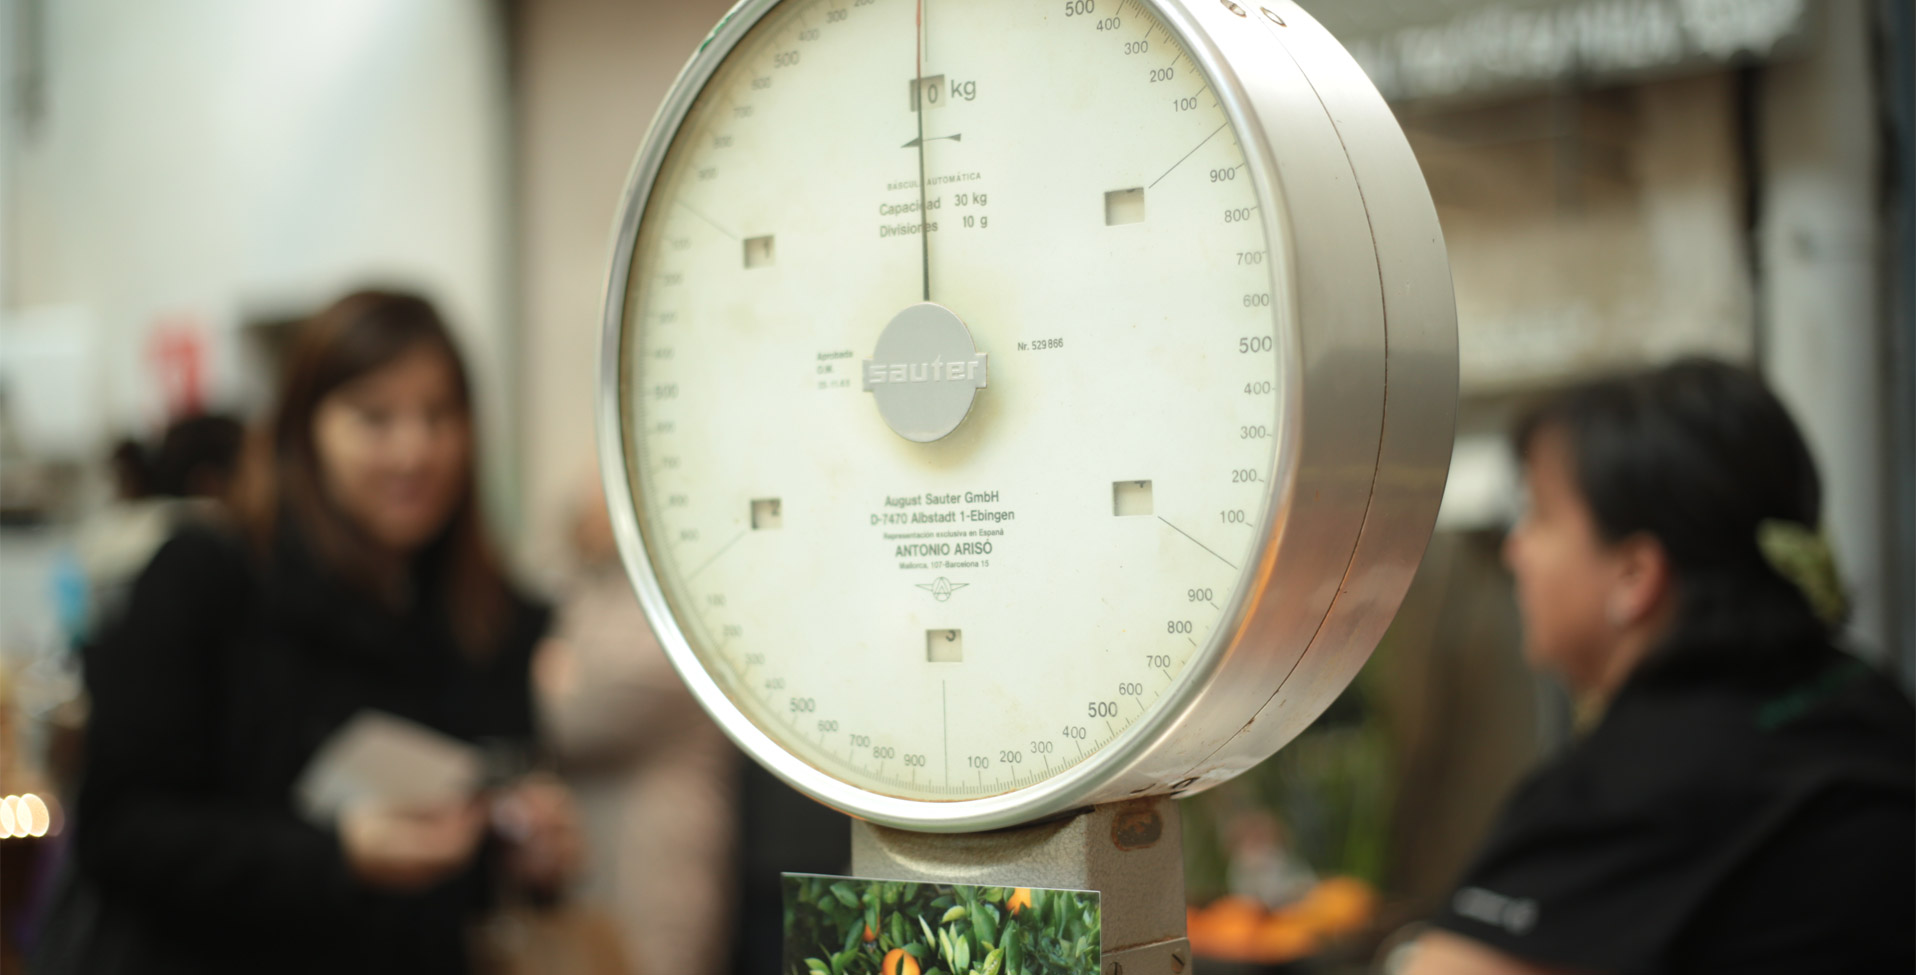 a food scale at a market